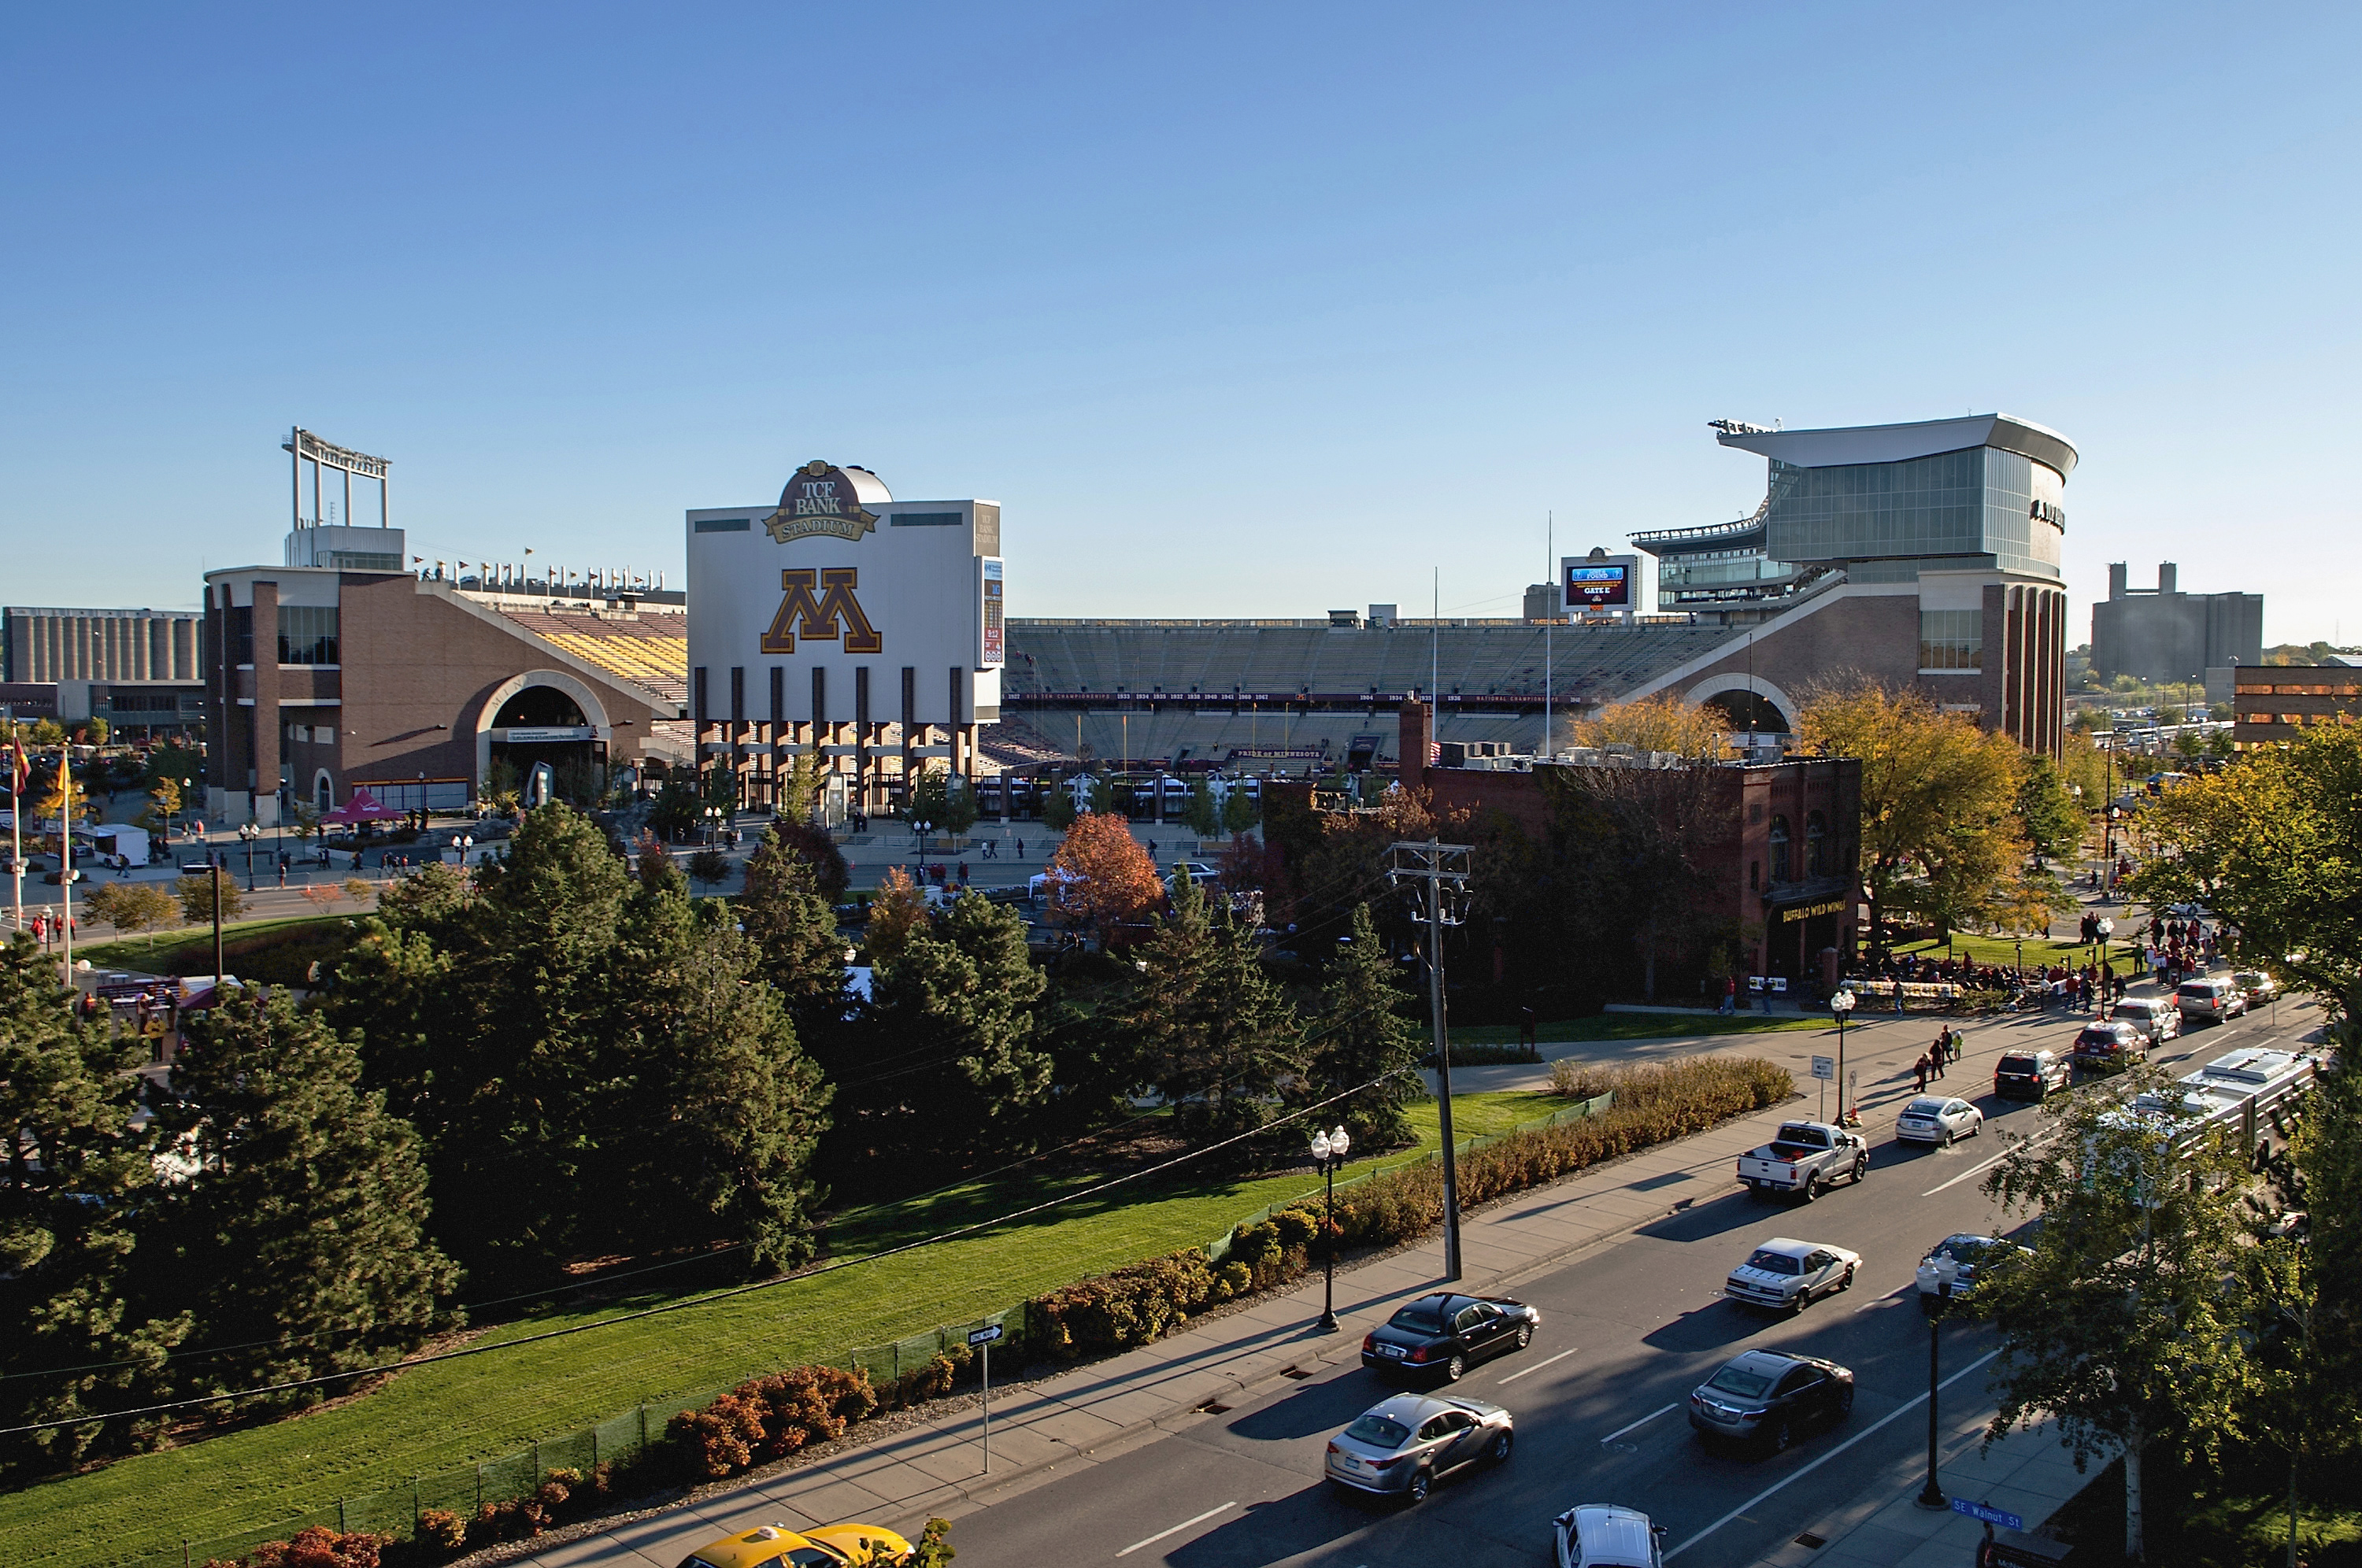 A general view of TCF Bank Stadium on Oct. 26, 2013 in Minneapolis.